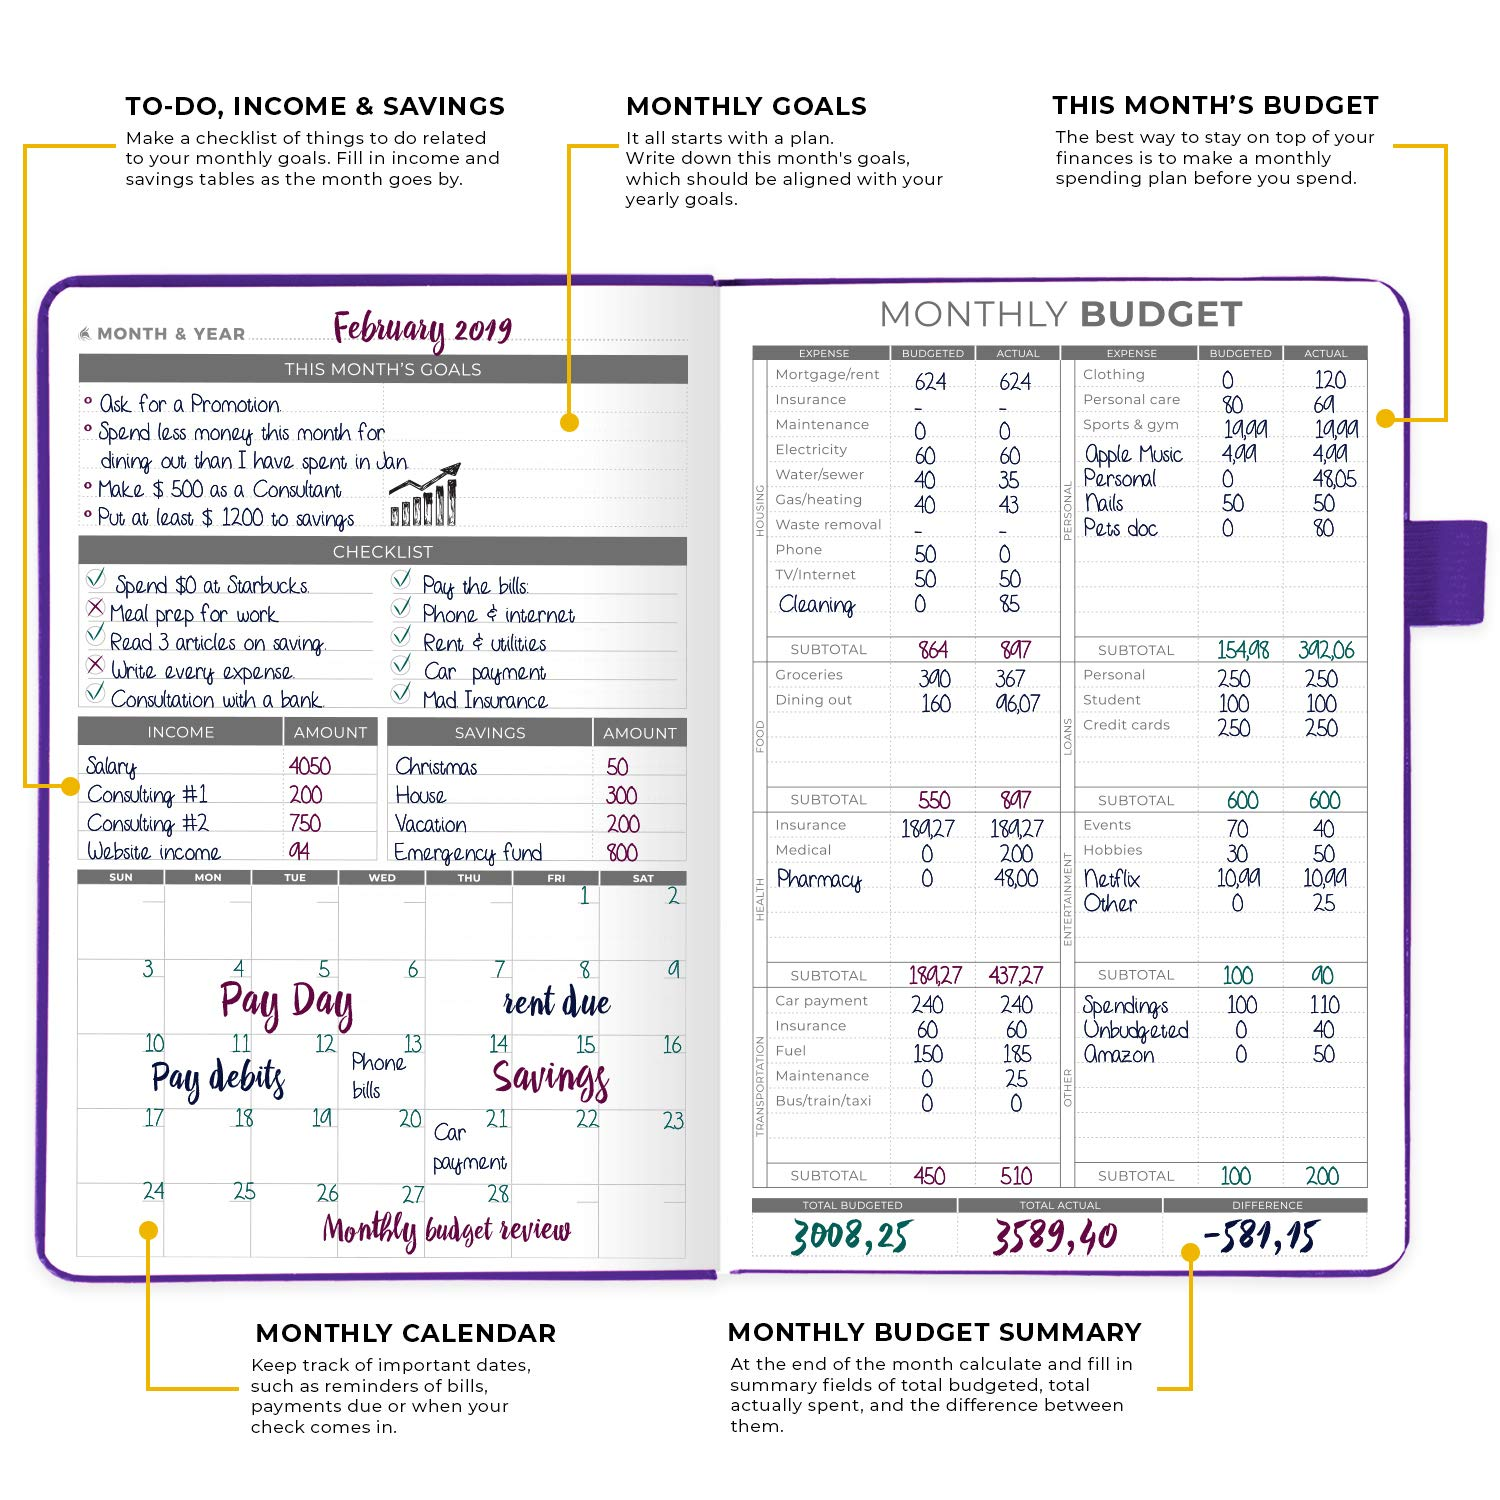 Clever-Fox-Budget-Planner-Expense-Tracker-Notebook-Monthly-Budgeting-Journal-Finance-Planner-Accounts-Book-to-Take-Control-of-Your-Money-Undated-Start-Anytime